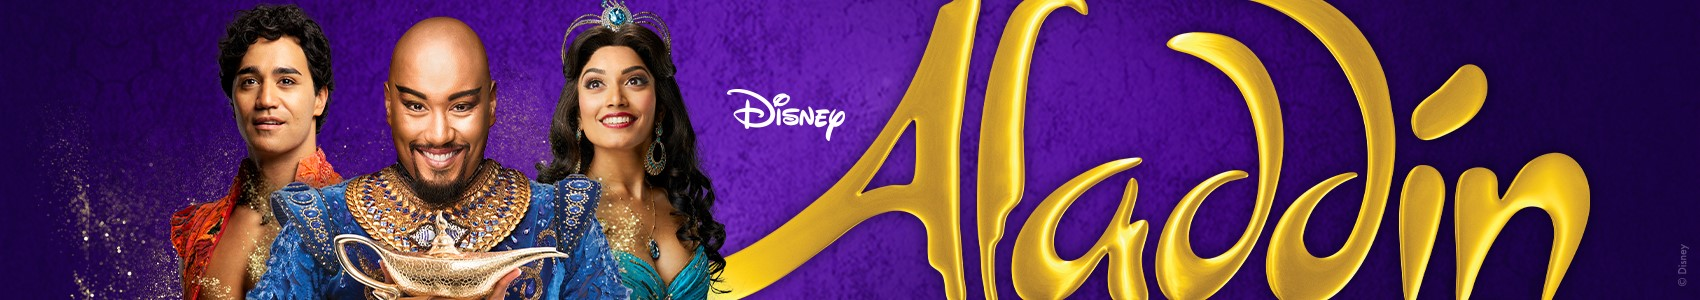 Know before you go: Disney's Aladdin The Musical